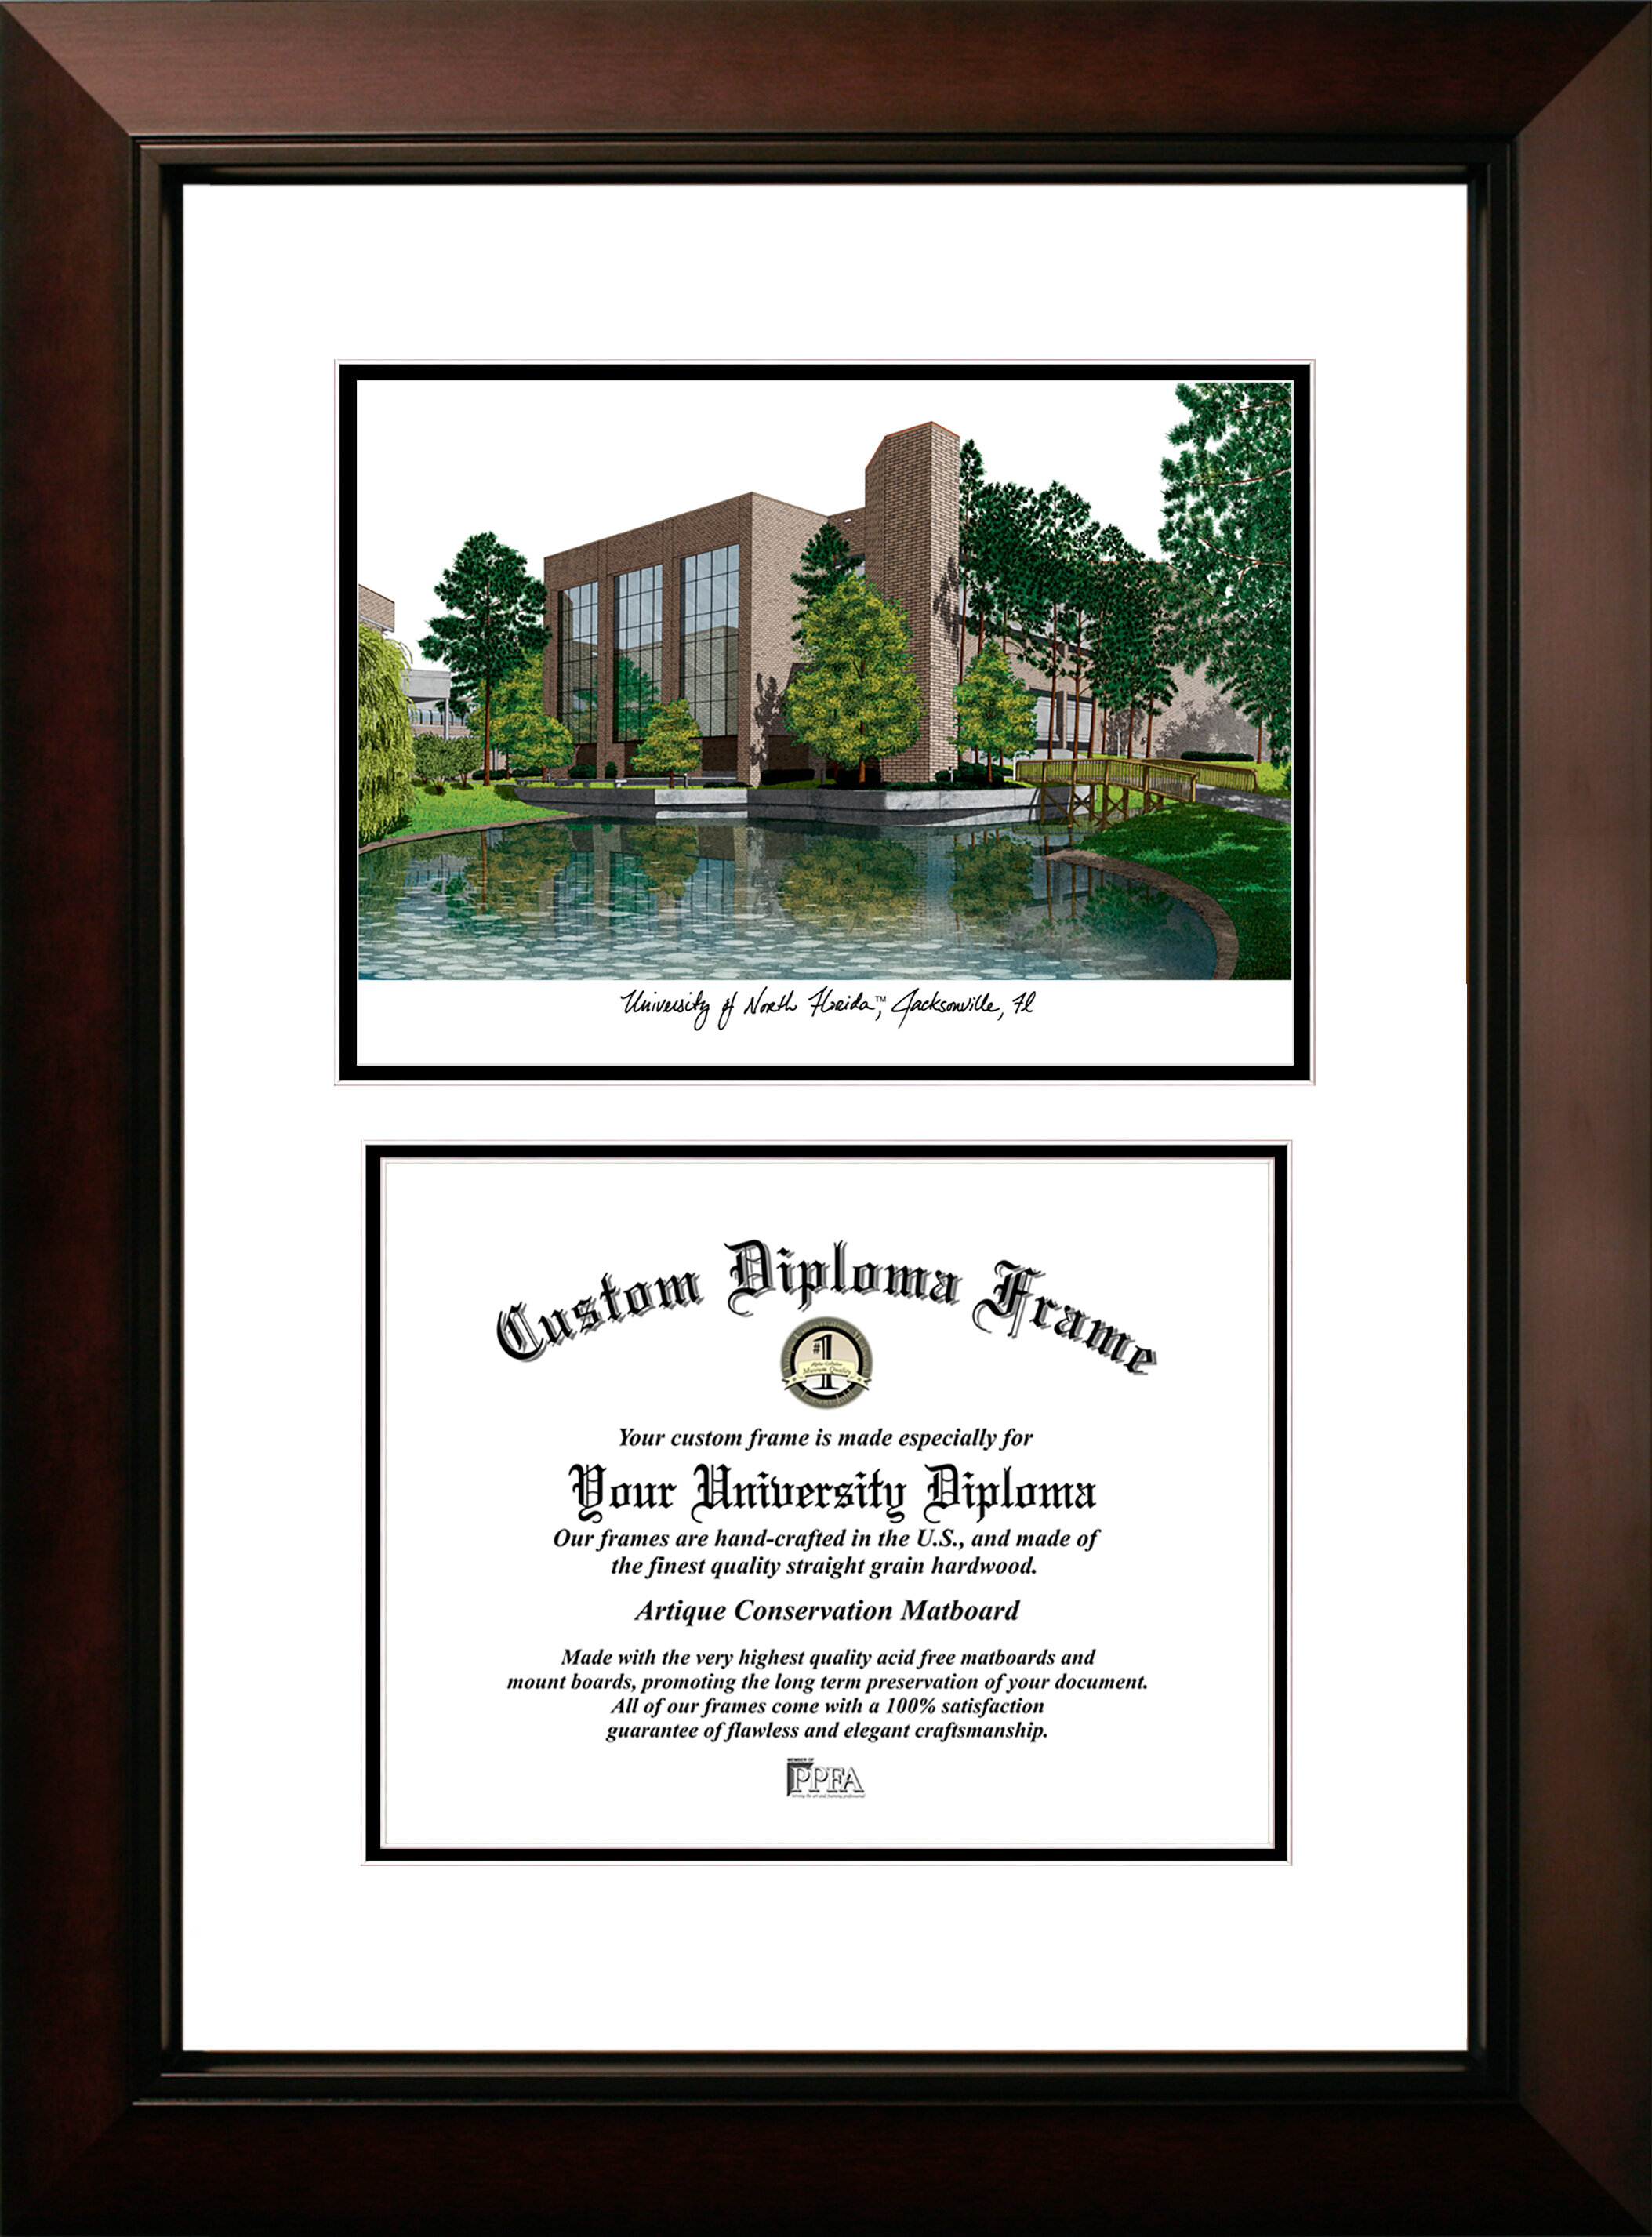 Campus Images Ncaa University Of North Florida Legacy Scholar Diploma Picture Framed Wayfair